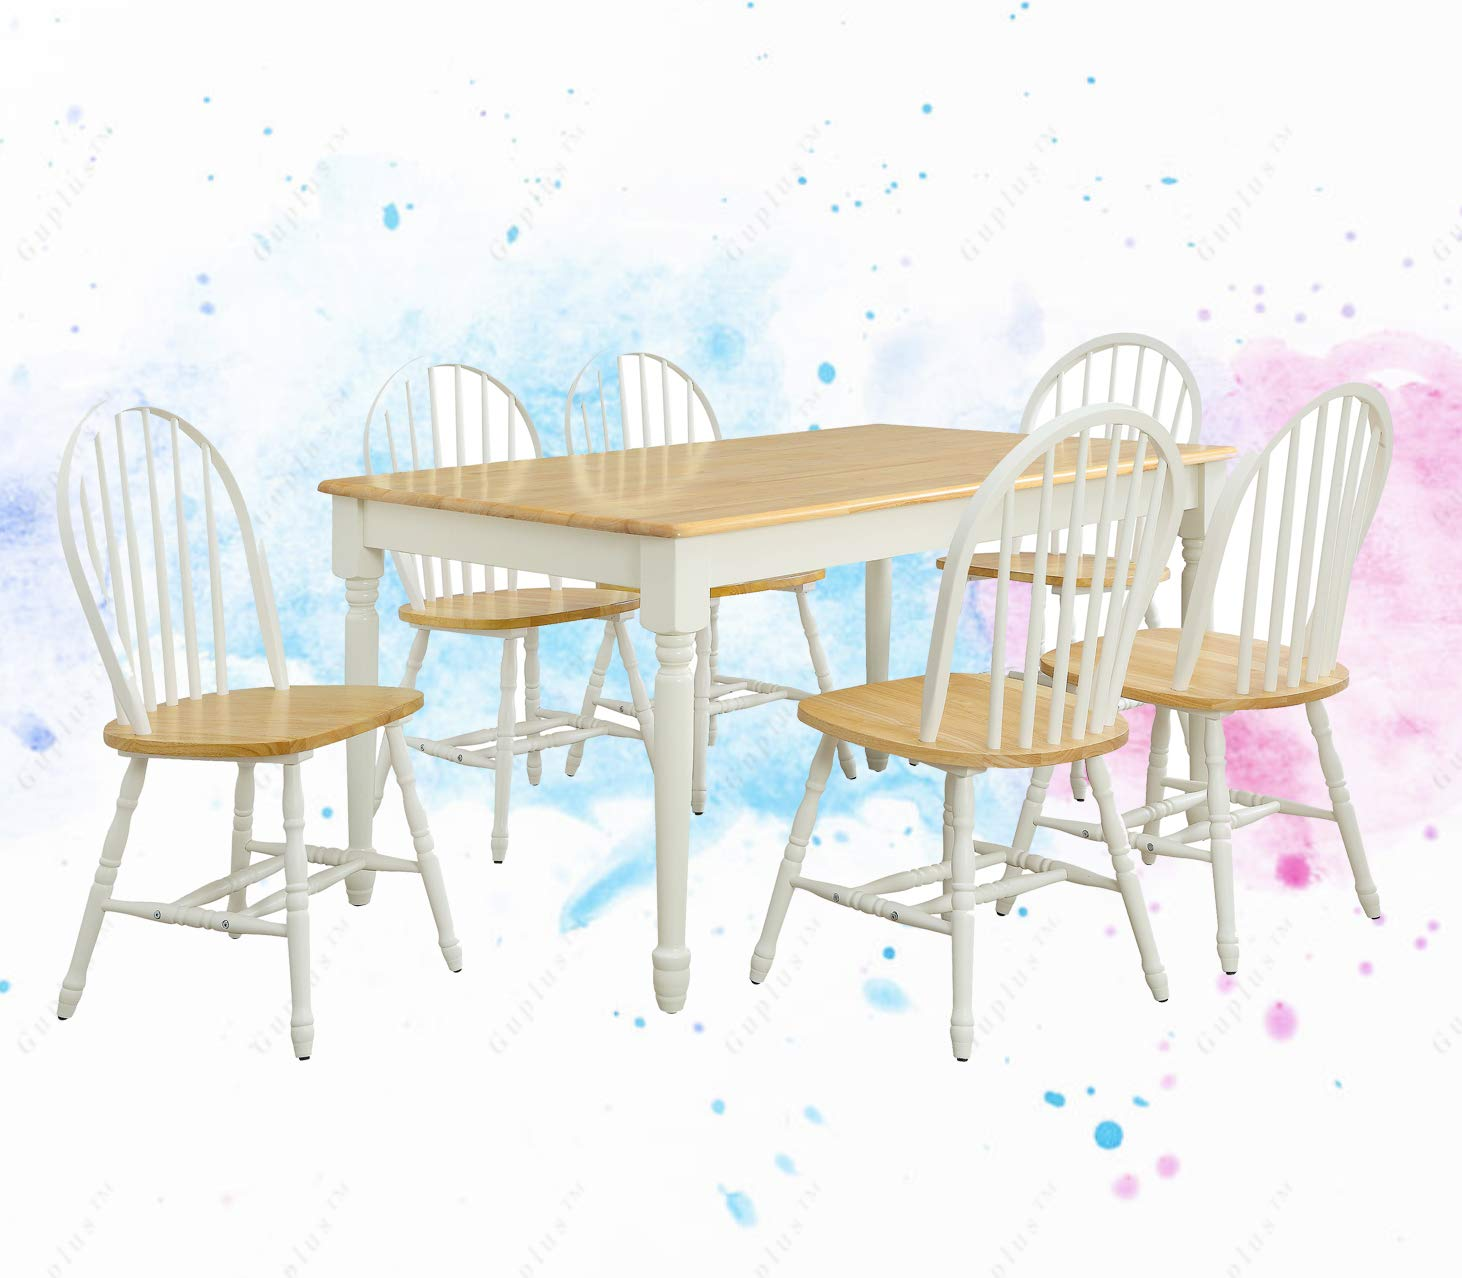 GUPLUS--Autumn Lane Farmhouse Dining Table, White and Natural.Sturdy Wood Construction Coordinates with Autumn Lane Collection Comfortably Seats 6